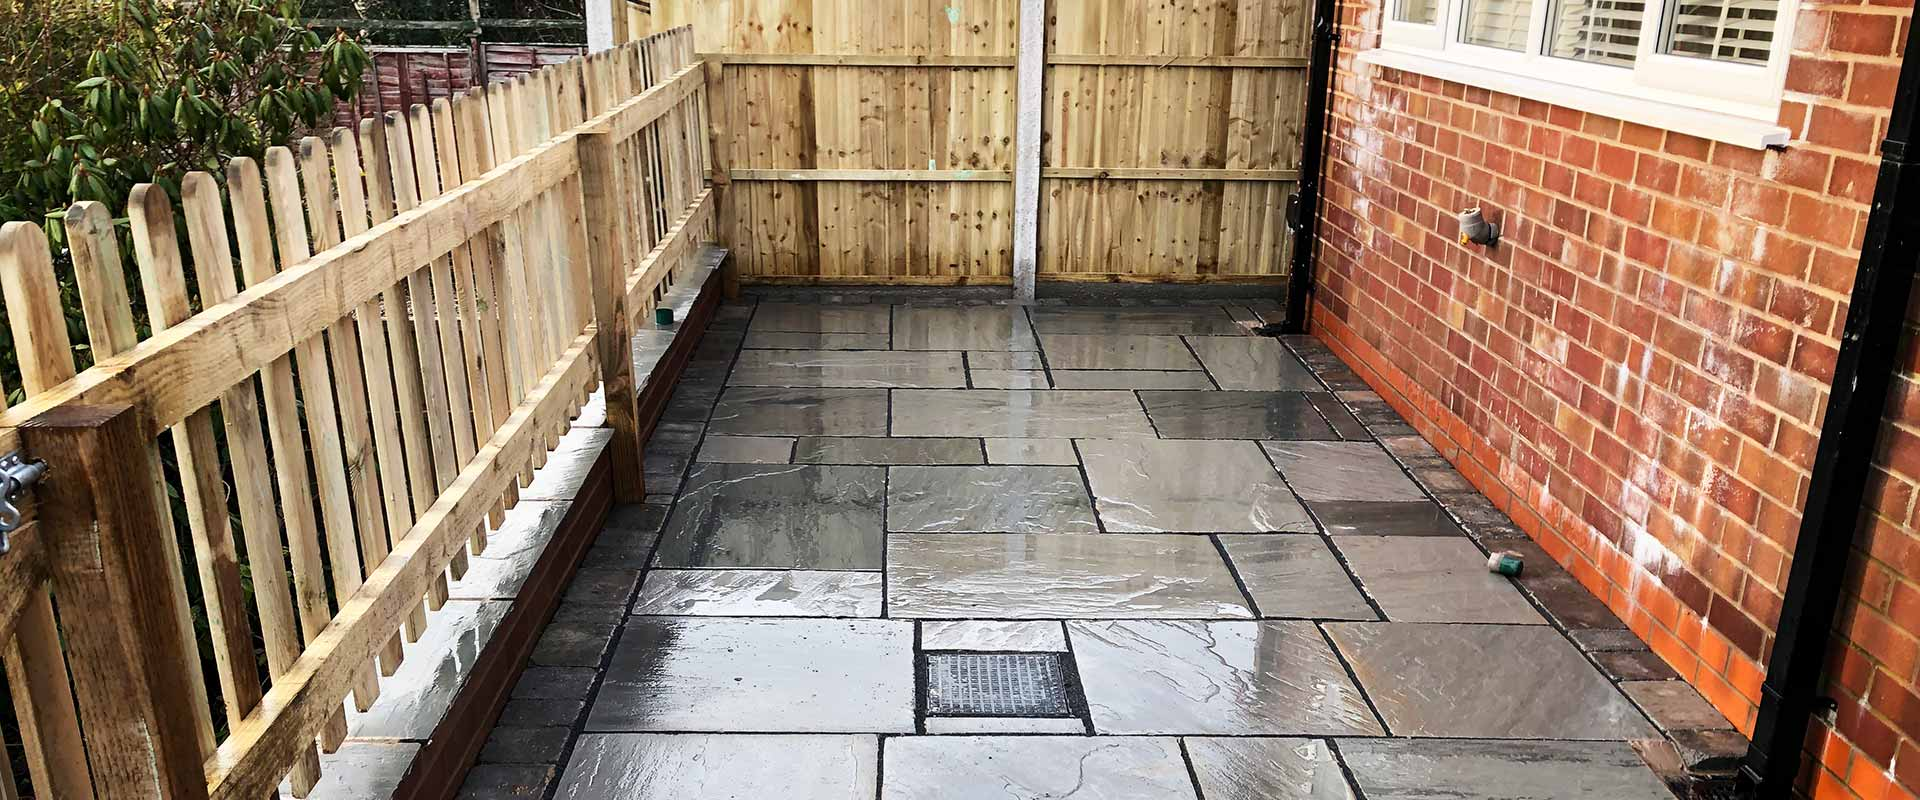 Patios, Paving and Fences